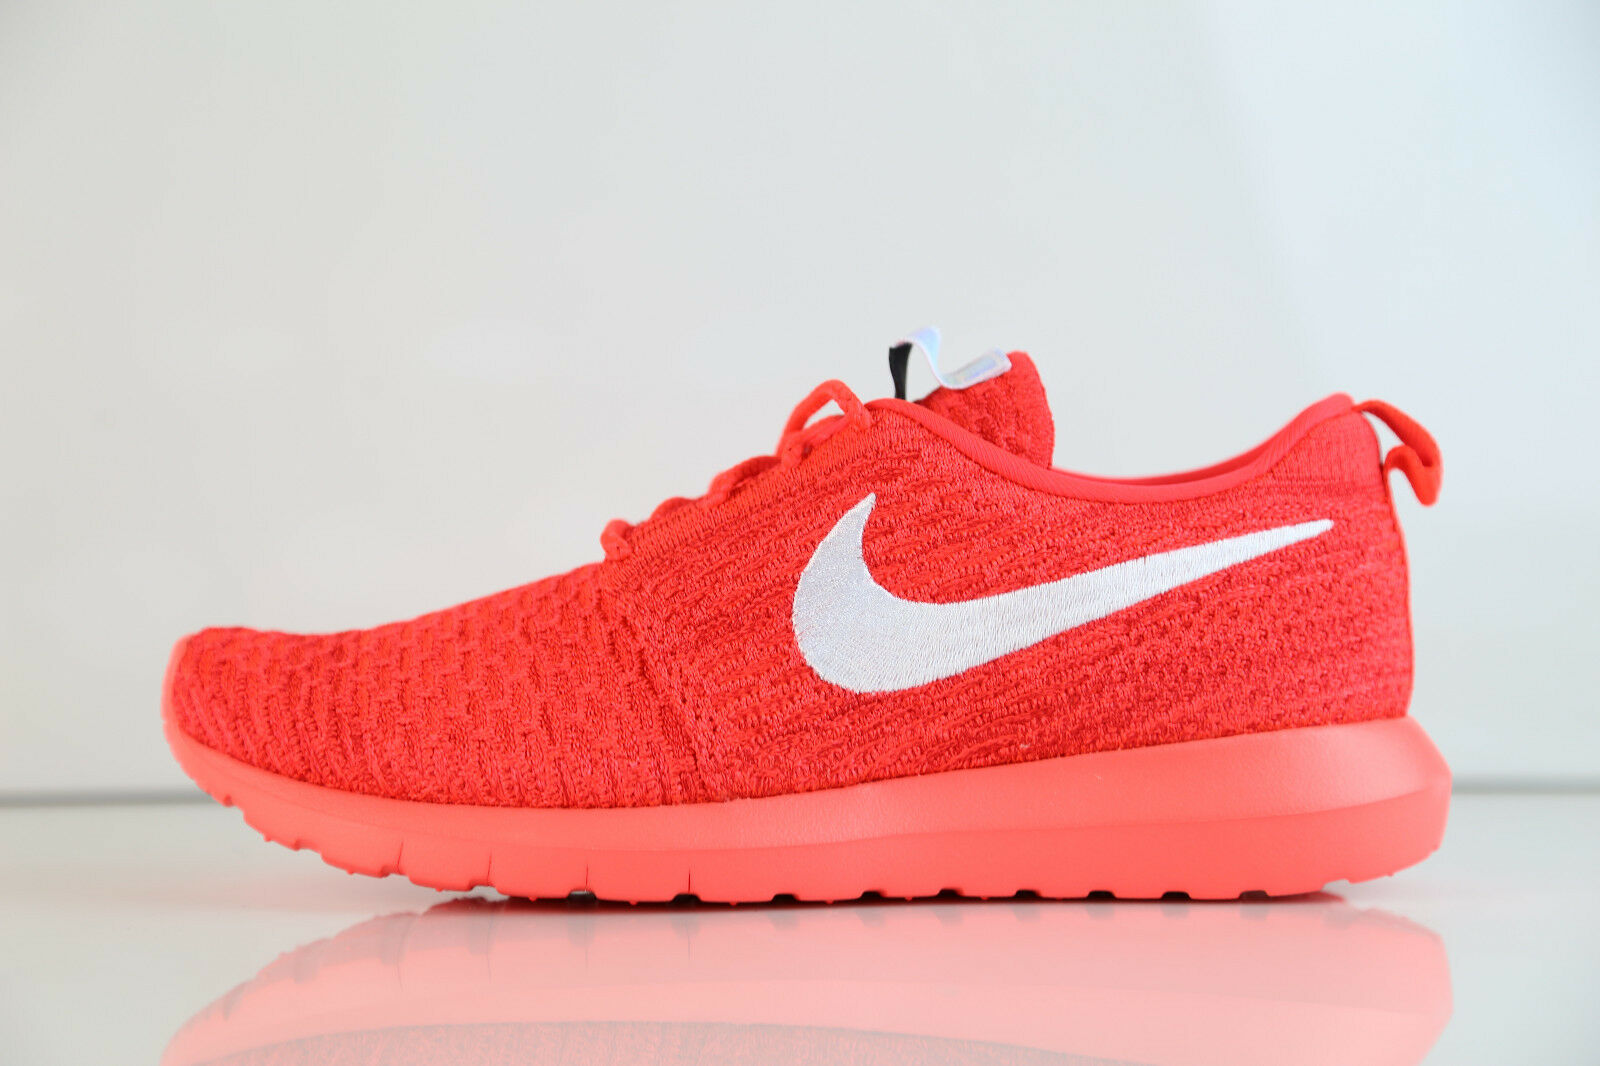 Nike Roshe Run Flyknit Bright Crimson White 677243-604 8-11 10 free